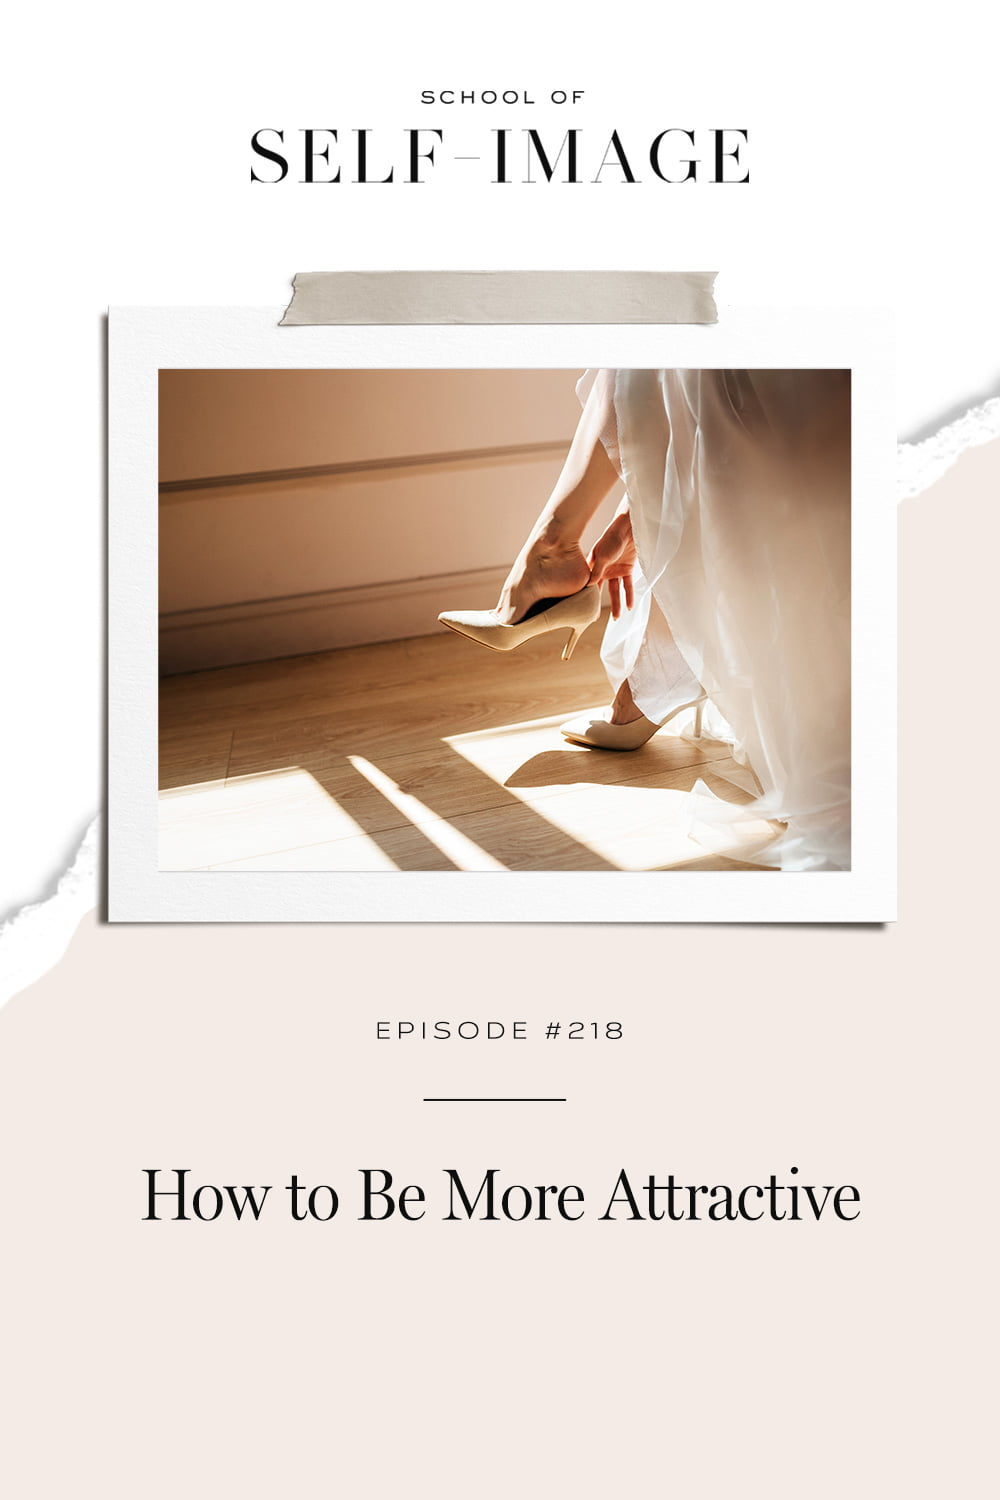 How to actually be more attractive to the type of person you're trying to attract.